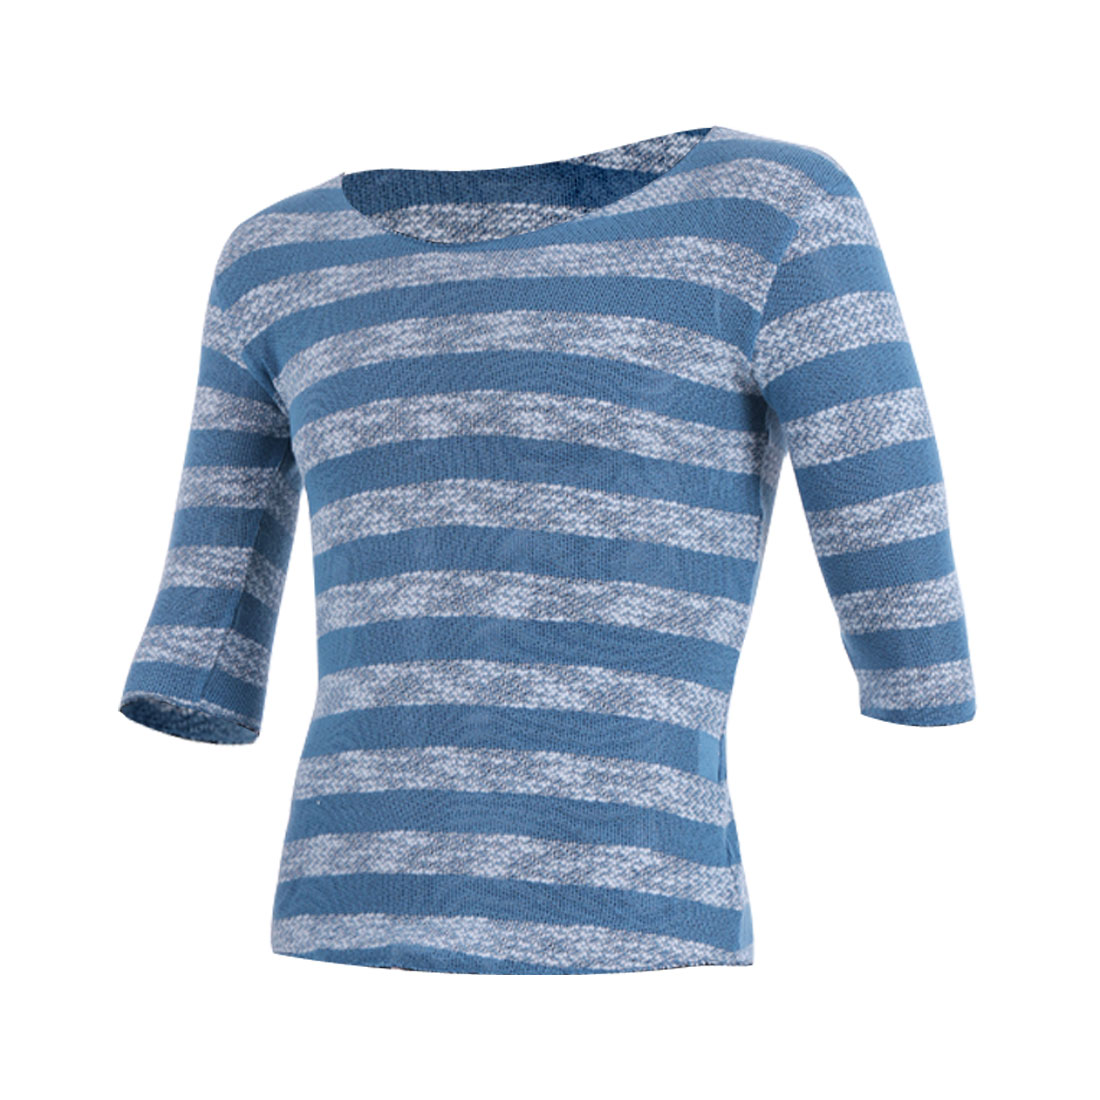 Man Round Neck Half Sleeves Striped Stretchy Knit Shirt Lake Blue M